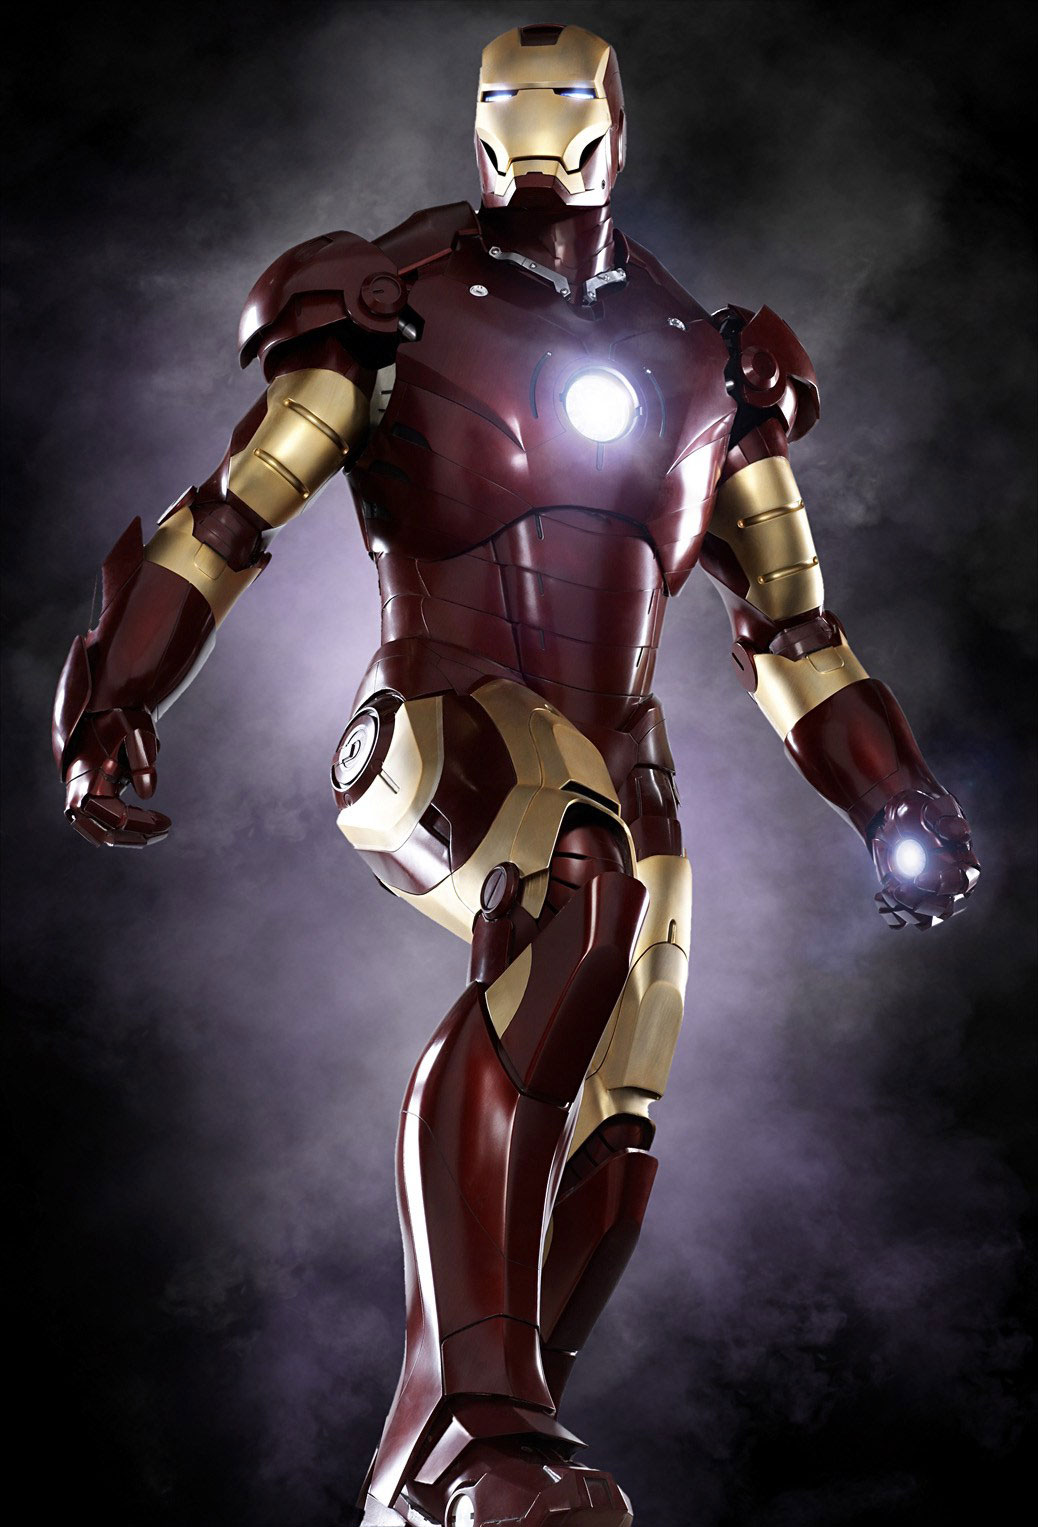 This Supreme Edition Iron Man costume brings the realistic look of Iron Man's super suit into a costume that you can wear without crafting super-genius level technology. The costume includes a black jumpsuit with gold metallic shorts that look like armor.